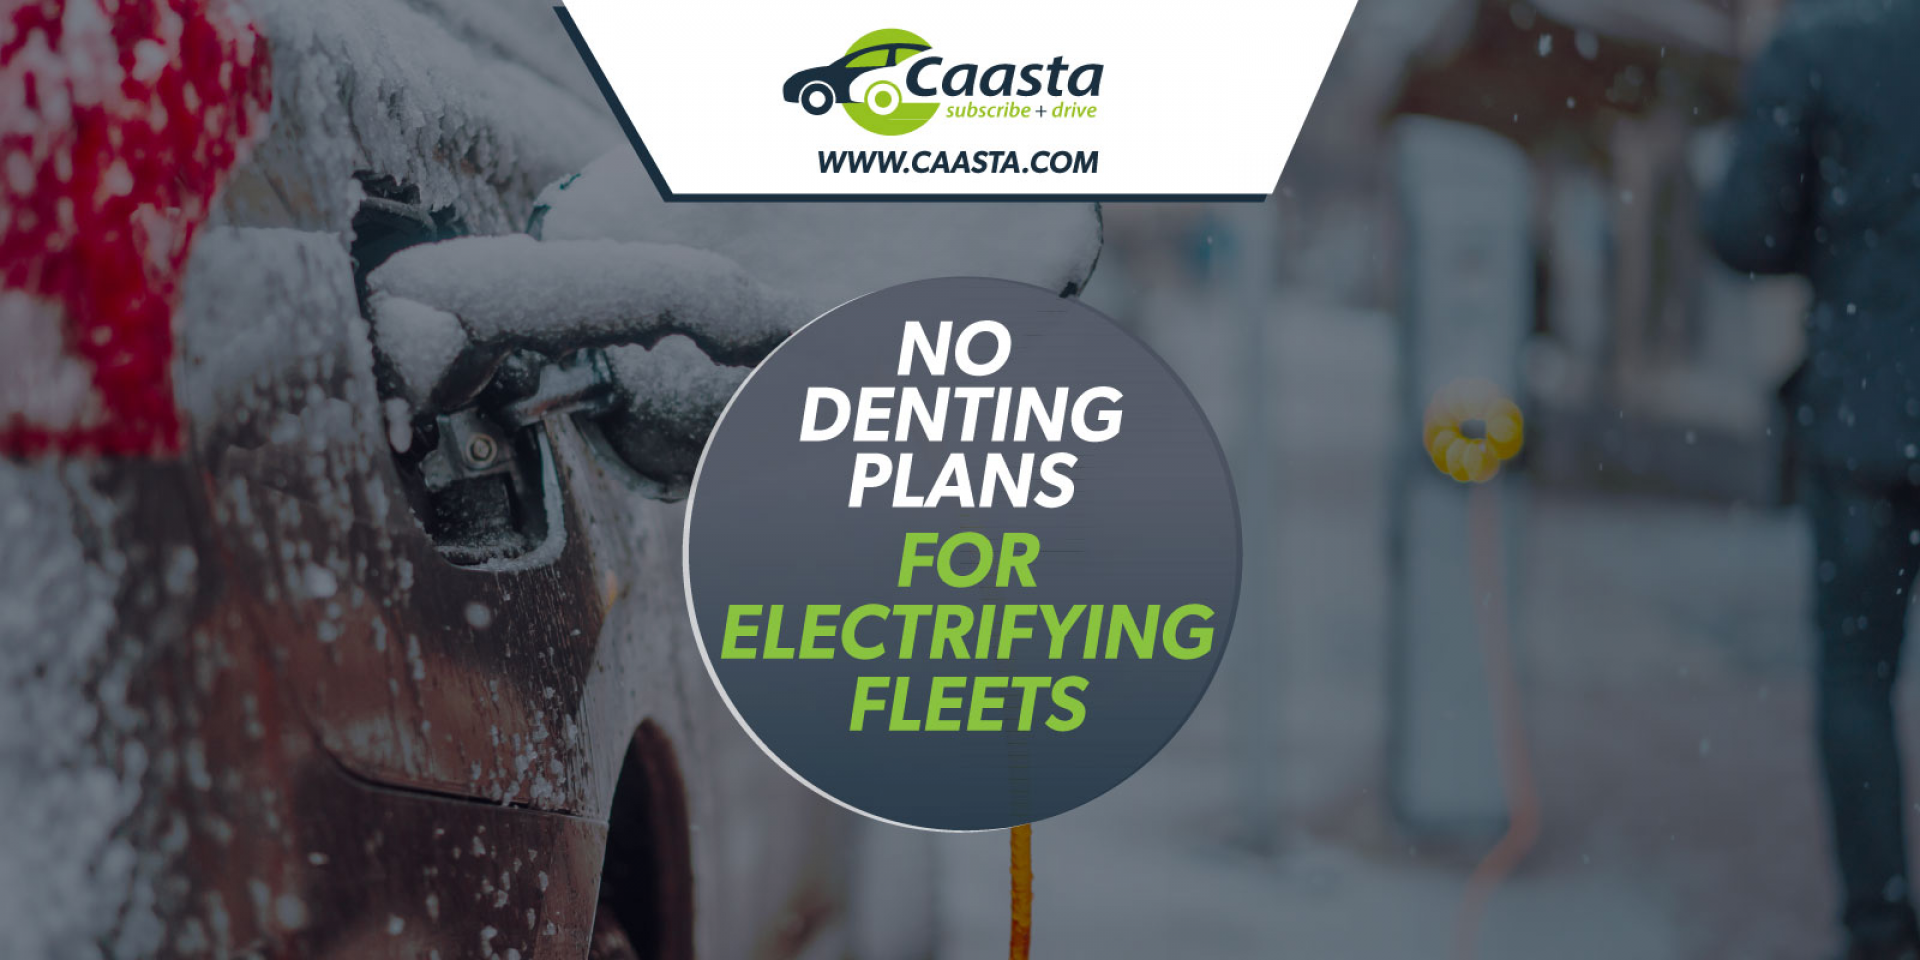 No denting fleet plans to go electric